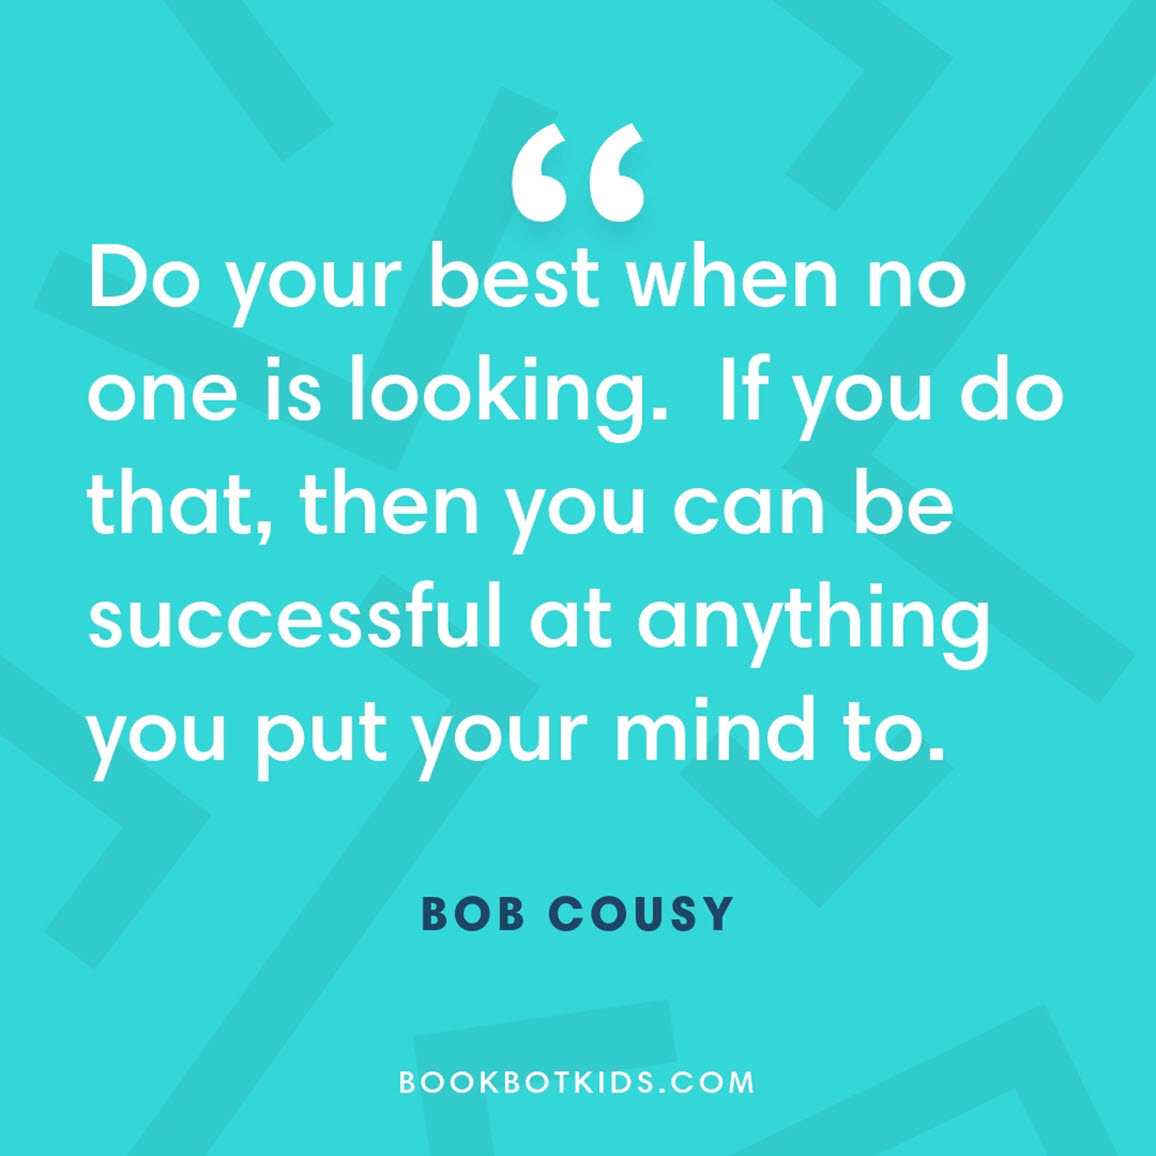 Do your best when no one is looking.  If you do that, then you can be successful at anything you put your mind to – Bob Cousy